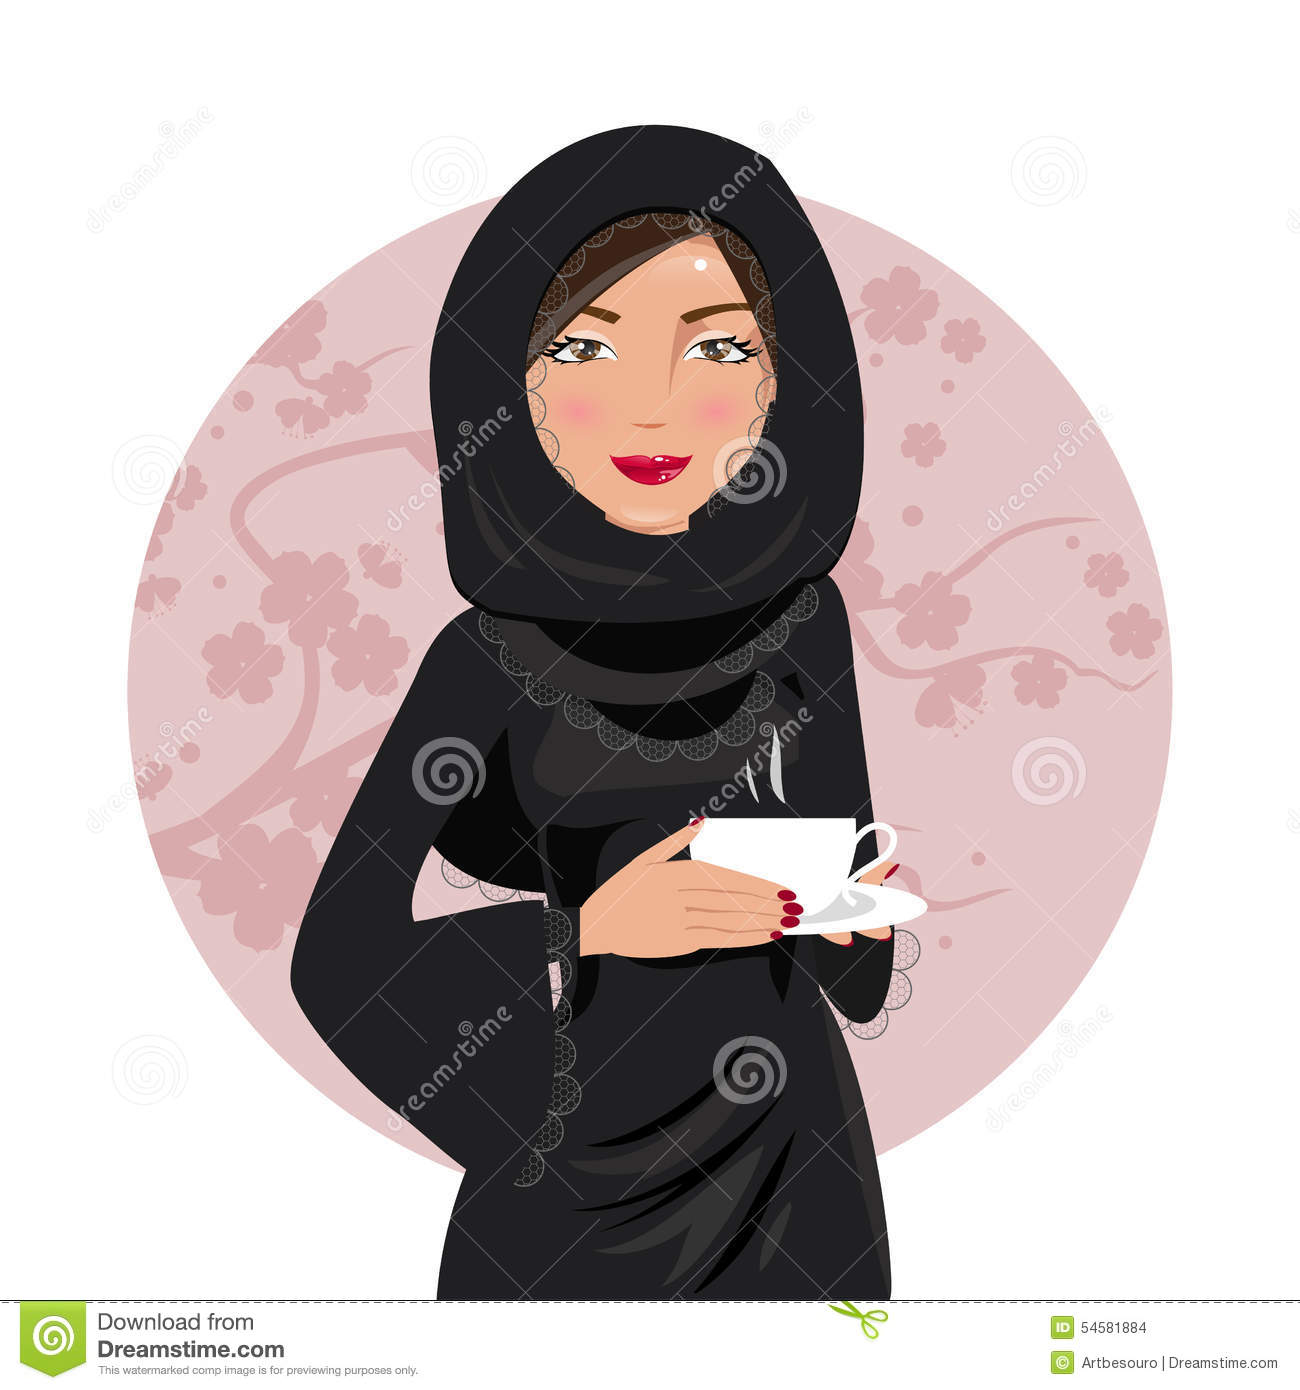 uae states map with Stock Illustration Arab Woman Vector Illustration Muslim National Costume Holding Coffee Hand Image54581884 on Oman Maps also Al Ain Location On The Uae Map moreover New Trends In Drones And The Surveying Field moreover Locations further Fantasy Europe Map Medieval 209598463.